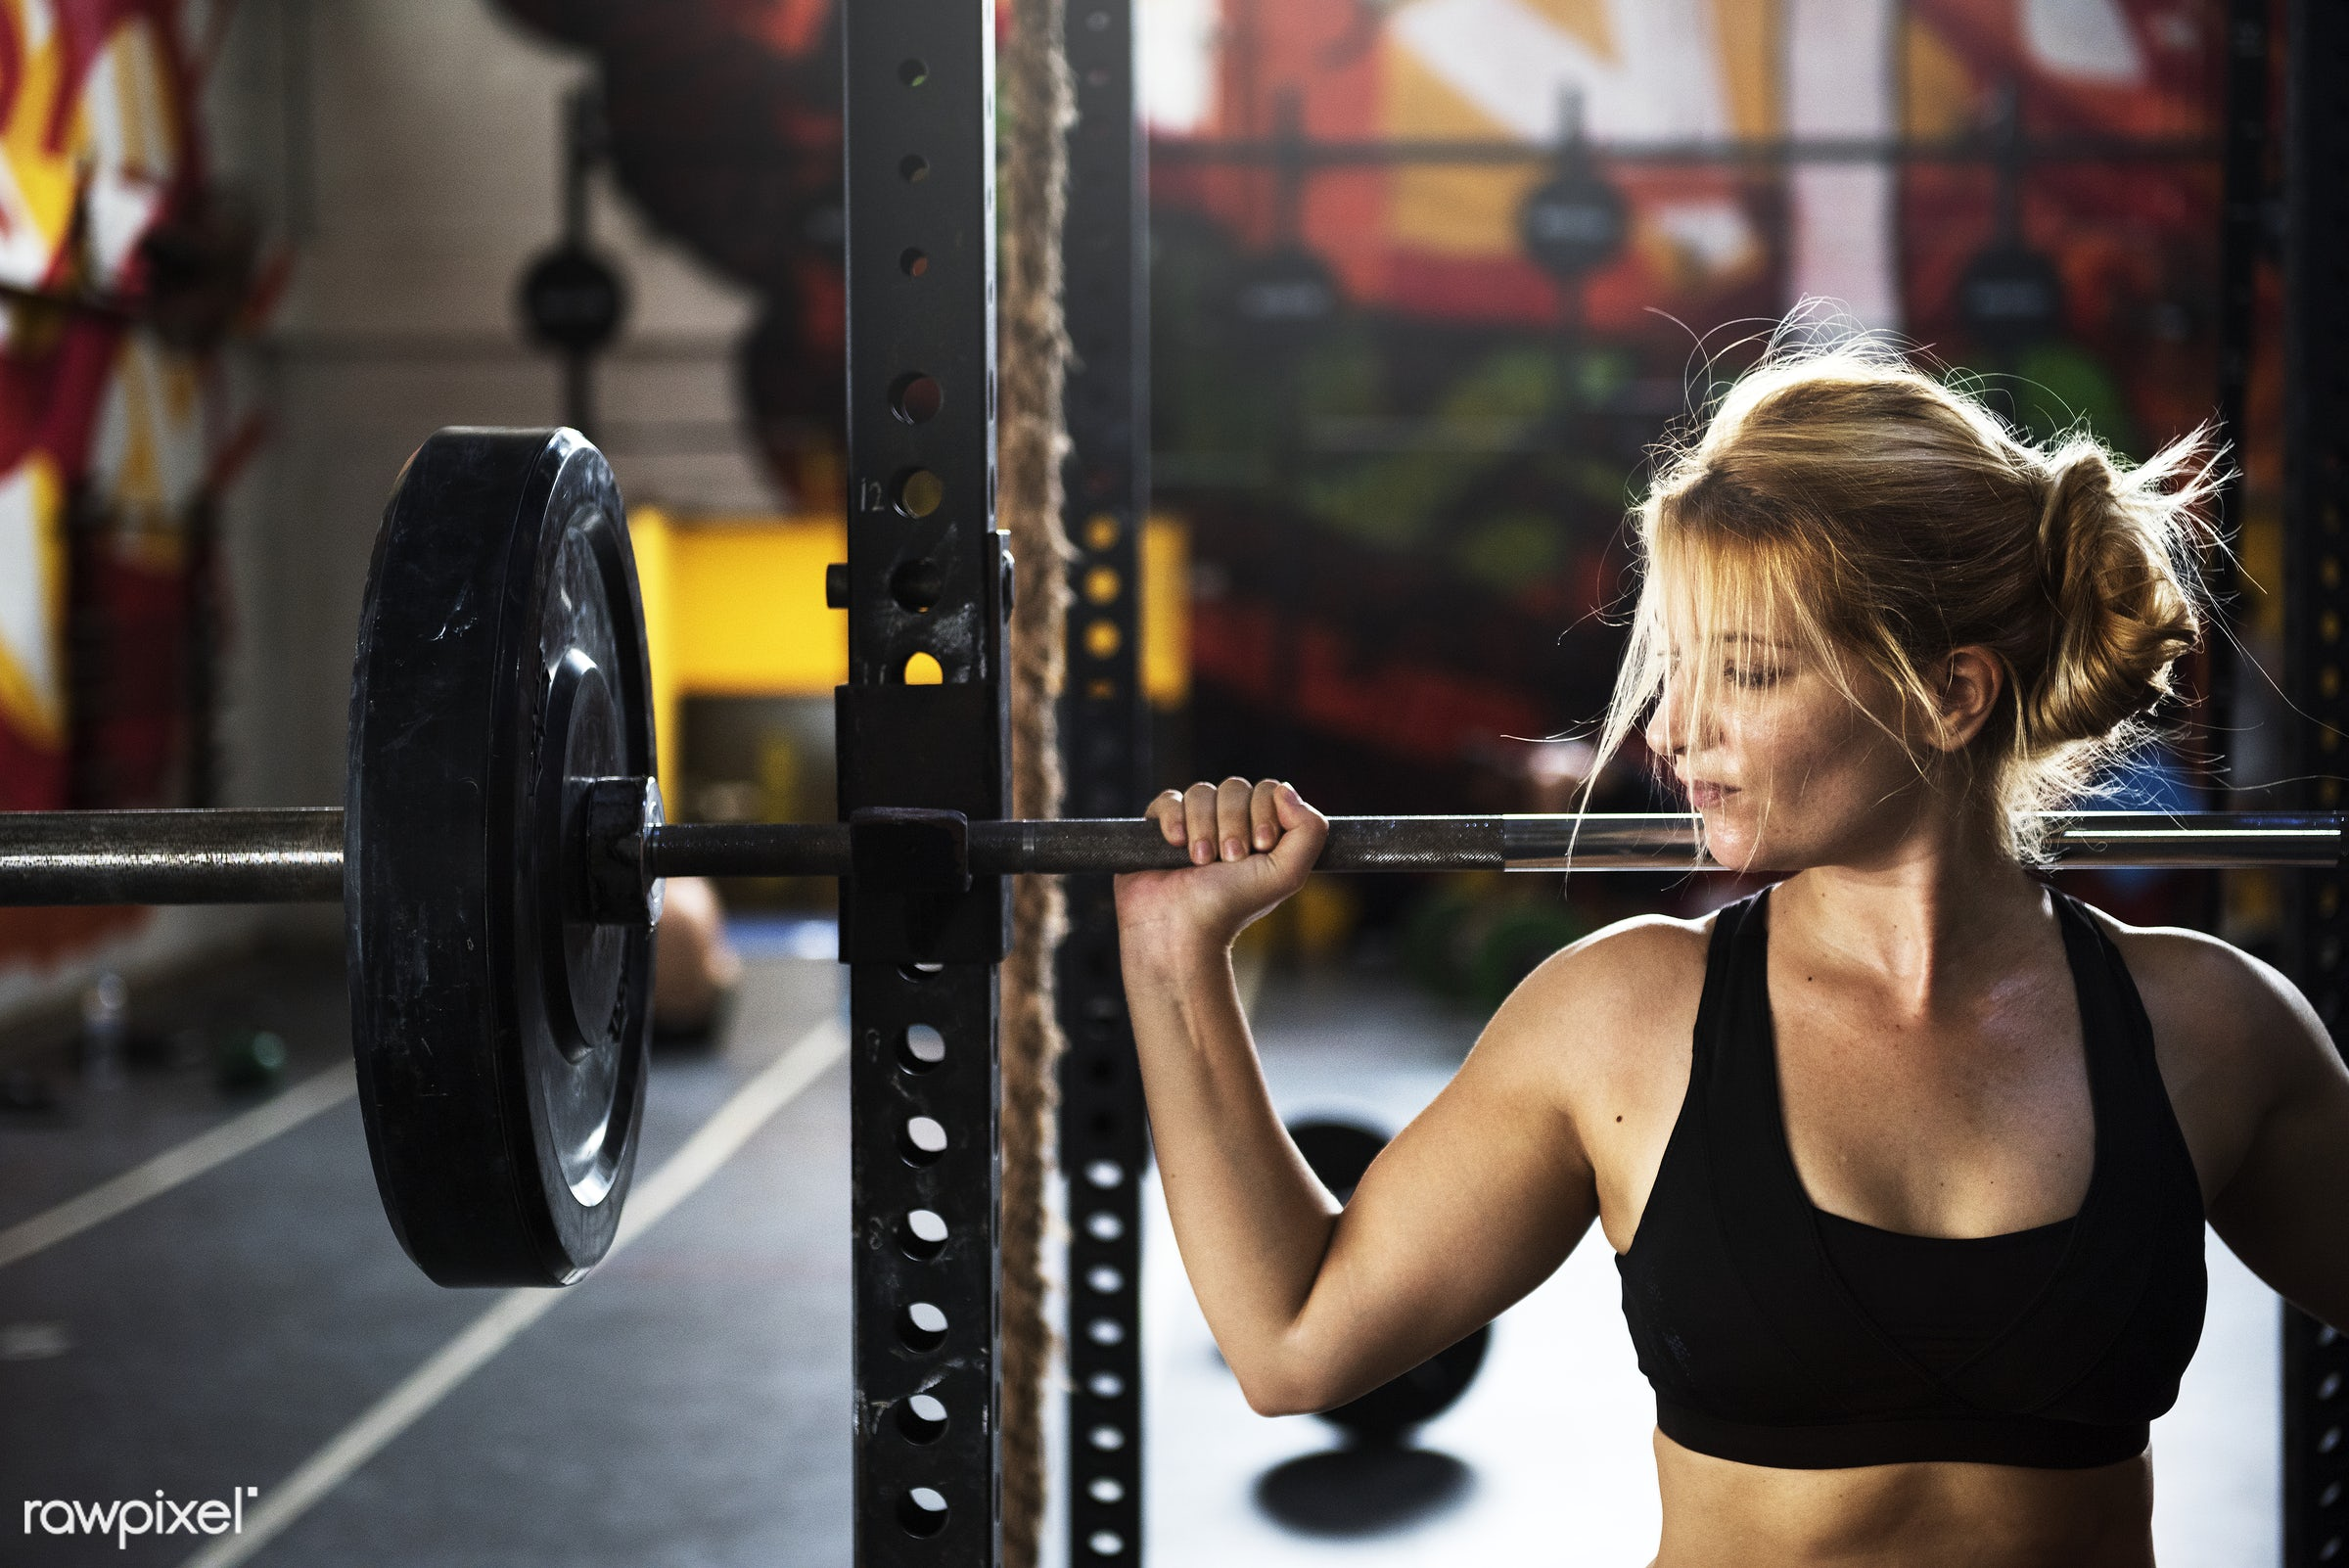 Strong woman at the gym - active, activity, athlete, athletic, barbell, body, buff, crossfit, equipment, female, fit,...